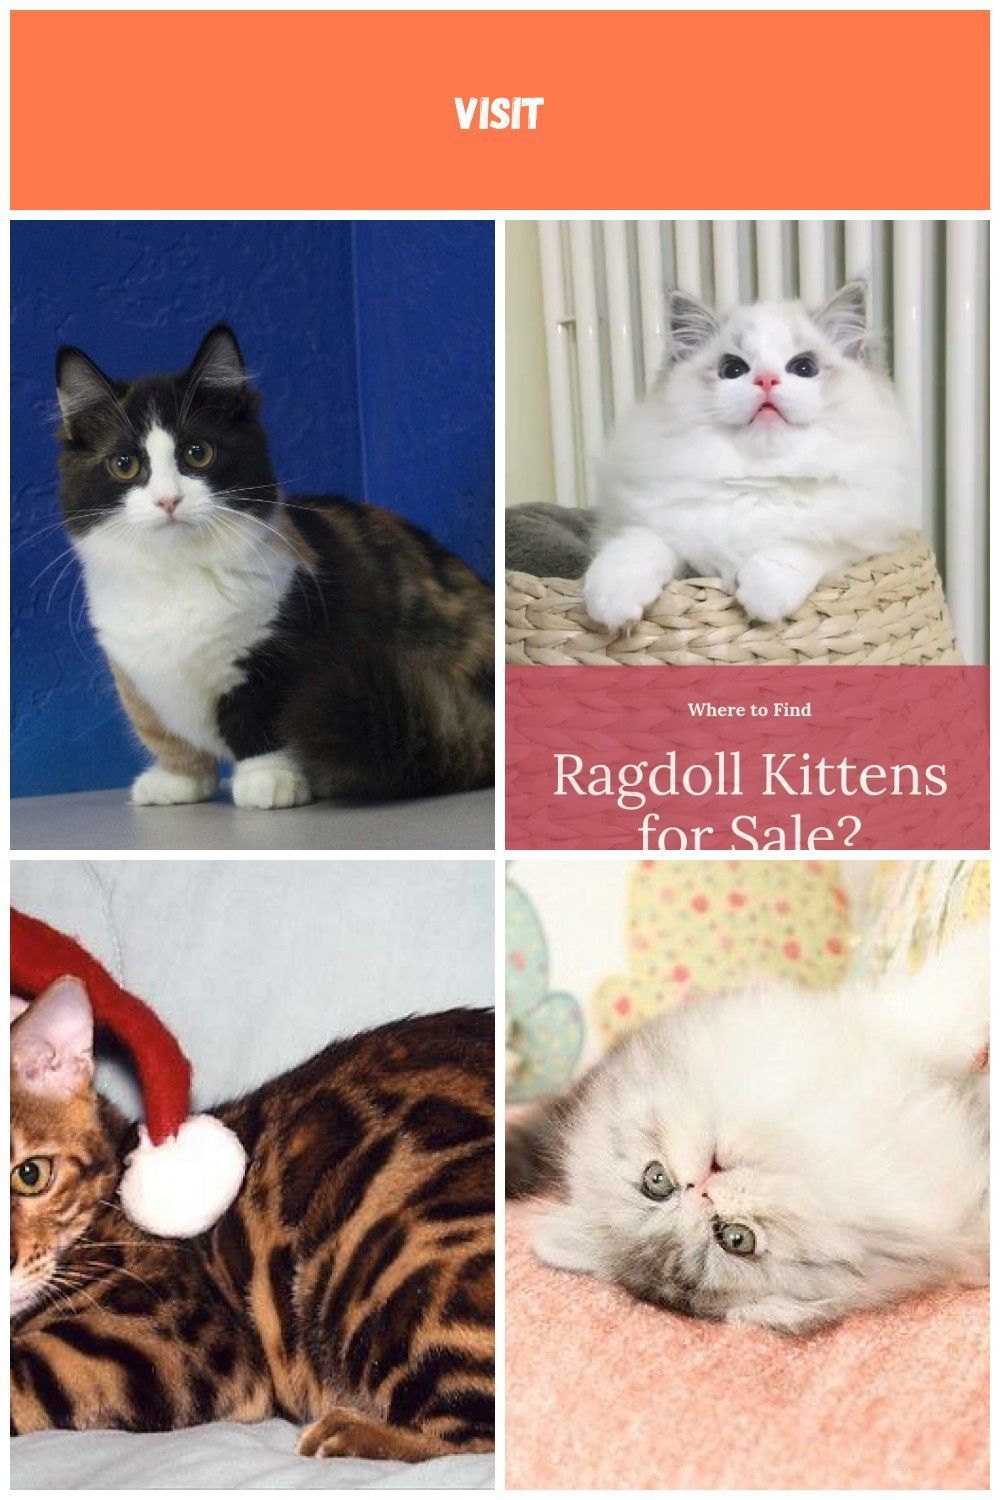 Ragdoll Kittens for Sale Near Me (With images) Ragdoll